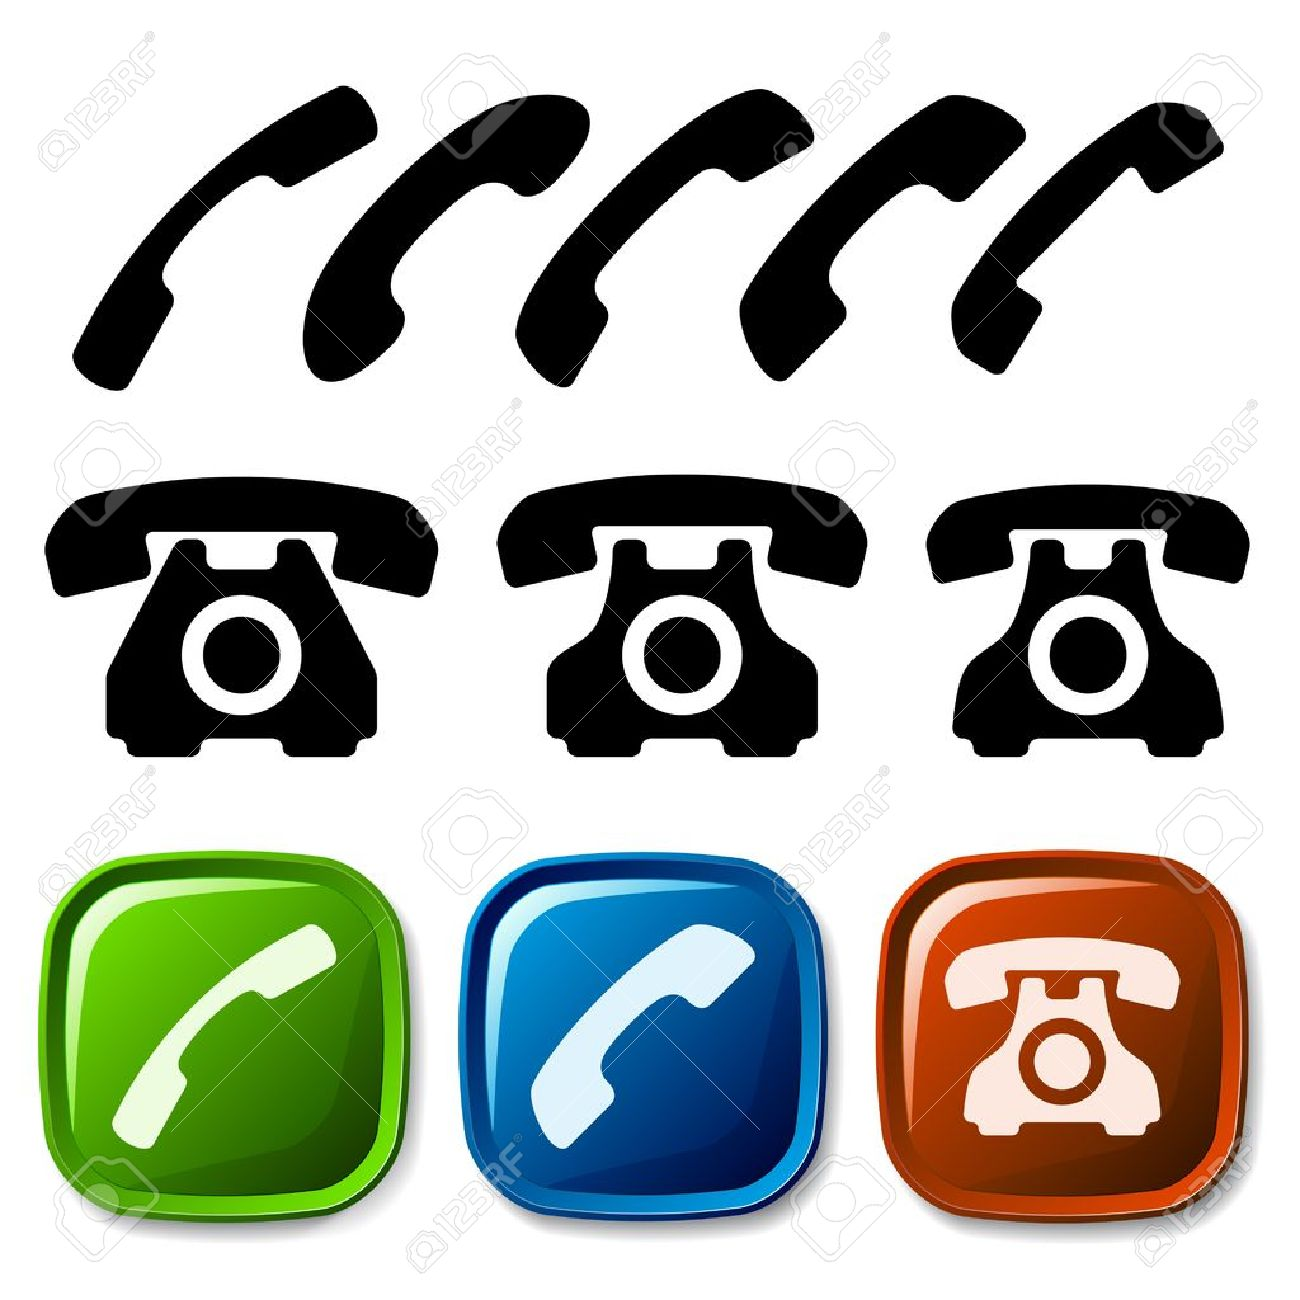 1300x1300 Vector Old Phone Icons Royalty Free Cliparts, Vectors, And Stock